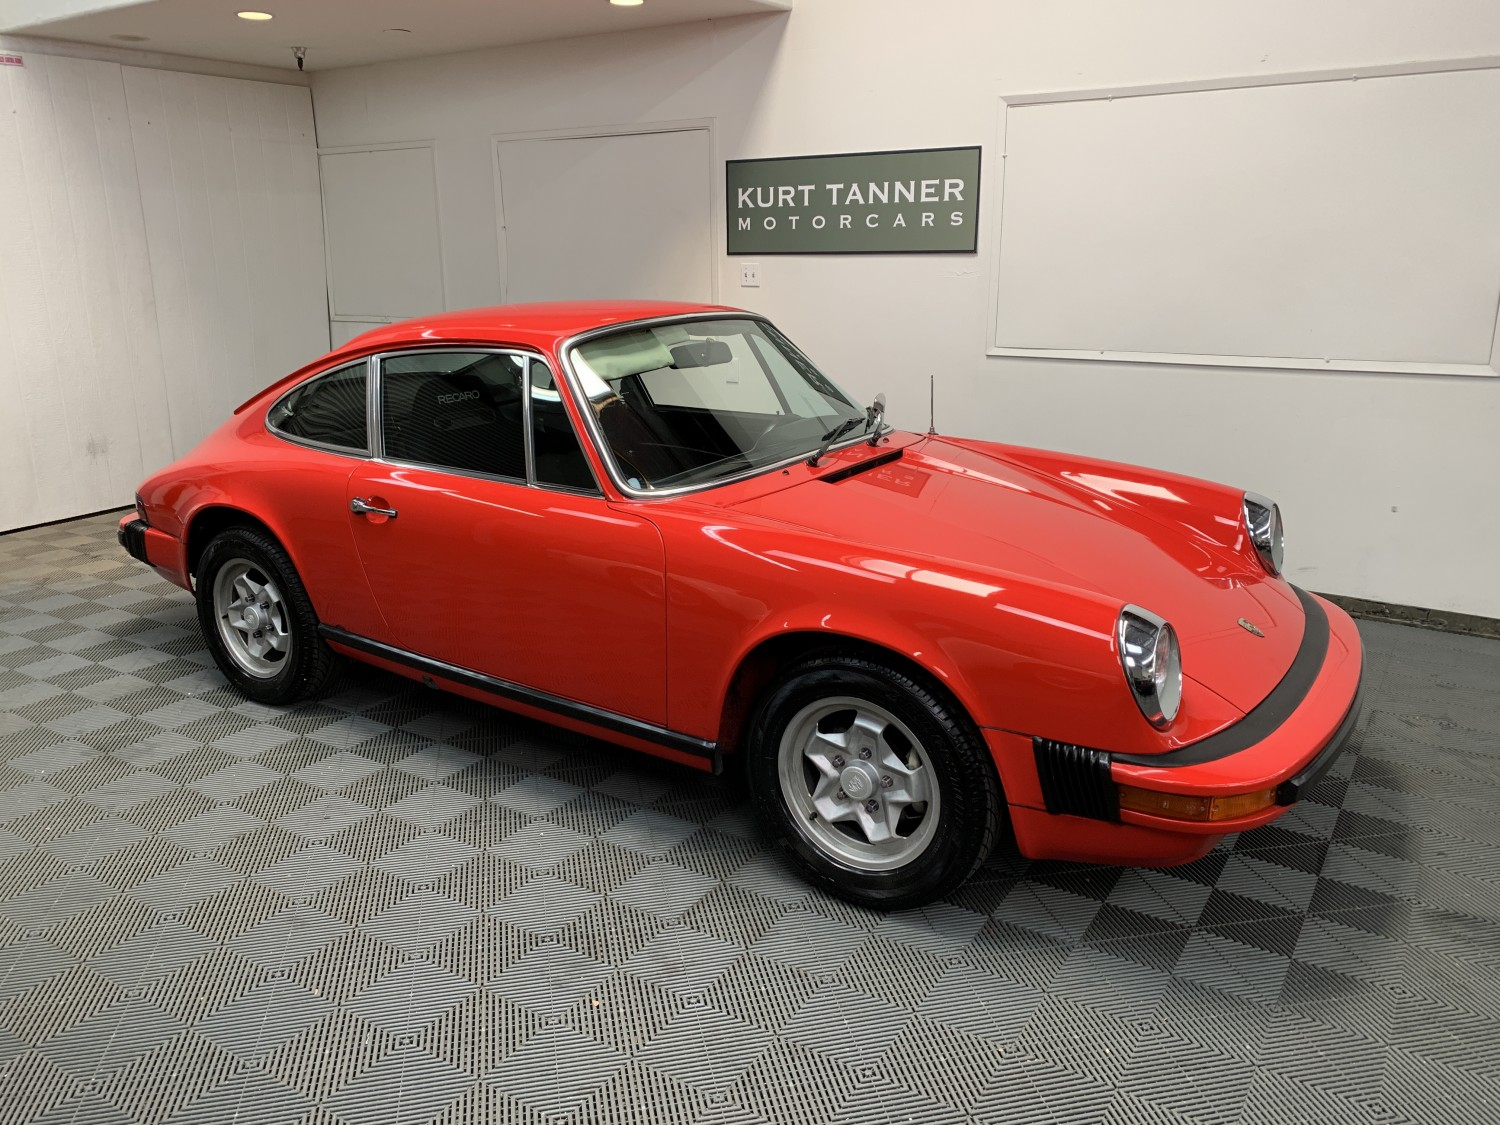 1975 PORSCHE 911 S COUPE. GUARDS RED WITH BLACK TRIM. 2.7 LITERS, 5-SPEED, COOKIE CUTTER WHEELS. 97,669 MILES. SUPERB DRIVING, WELL-PRESERVED ORIGINAL CAR.